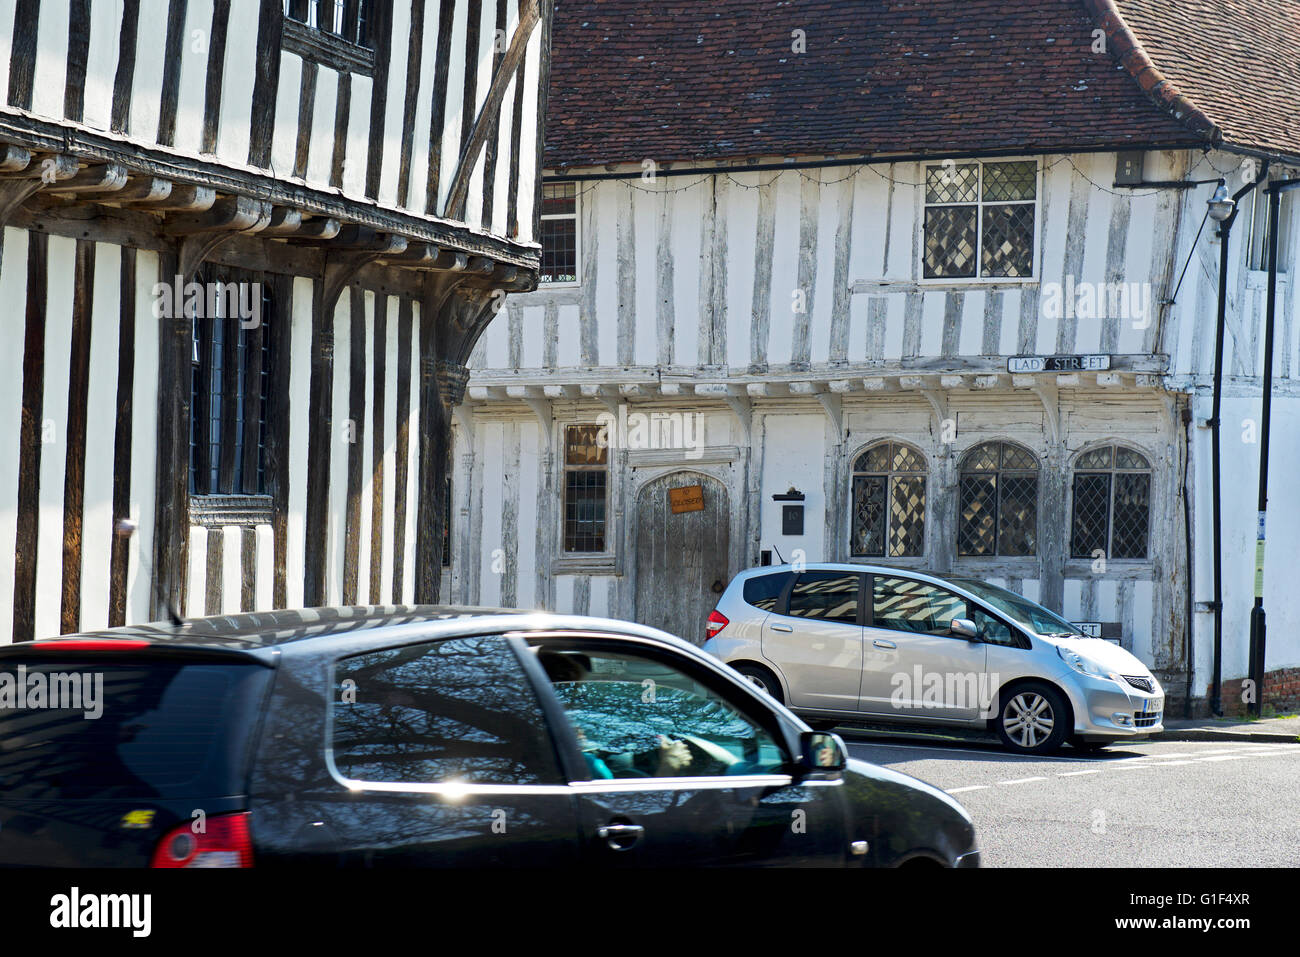 Cars in the medieval village of Lavenham, Suffolk, England UK - Stock Image